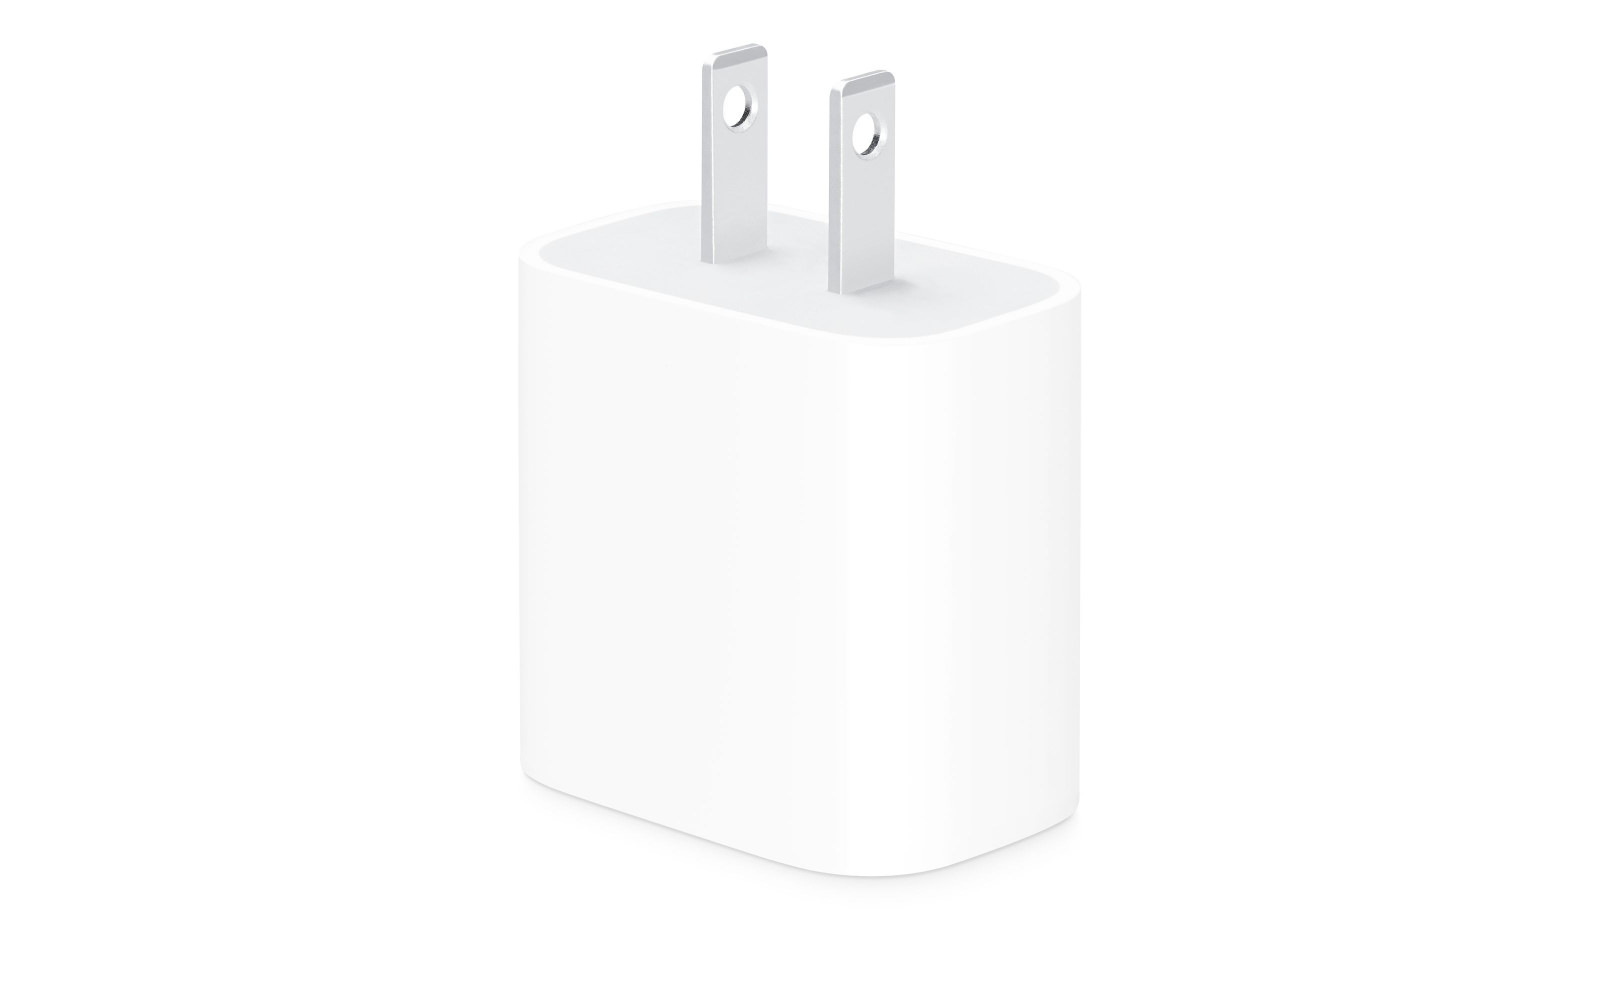 Apple 18W adapter